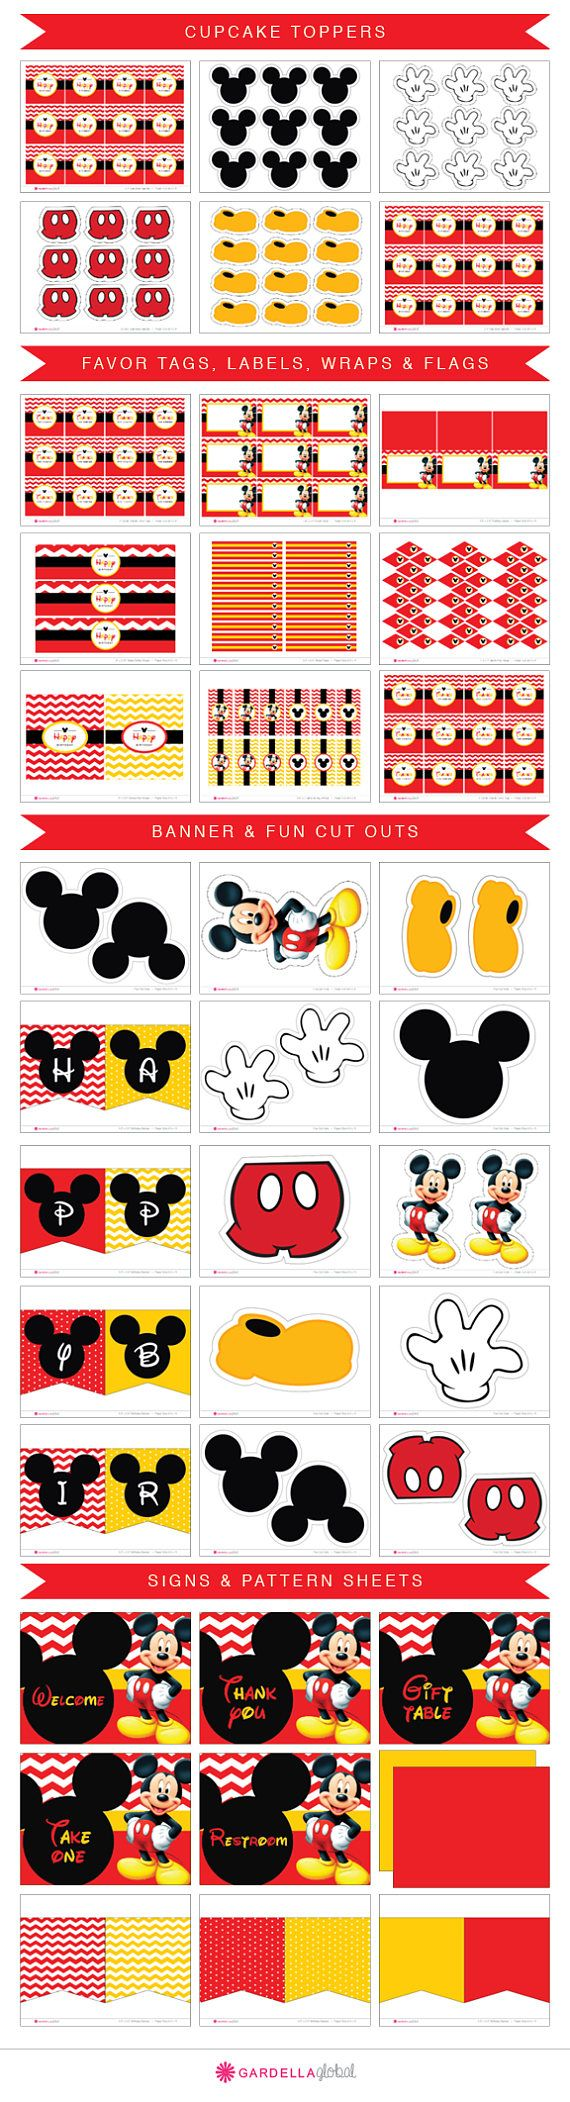 Mickey mouse invitación invitación de Mickey mouse